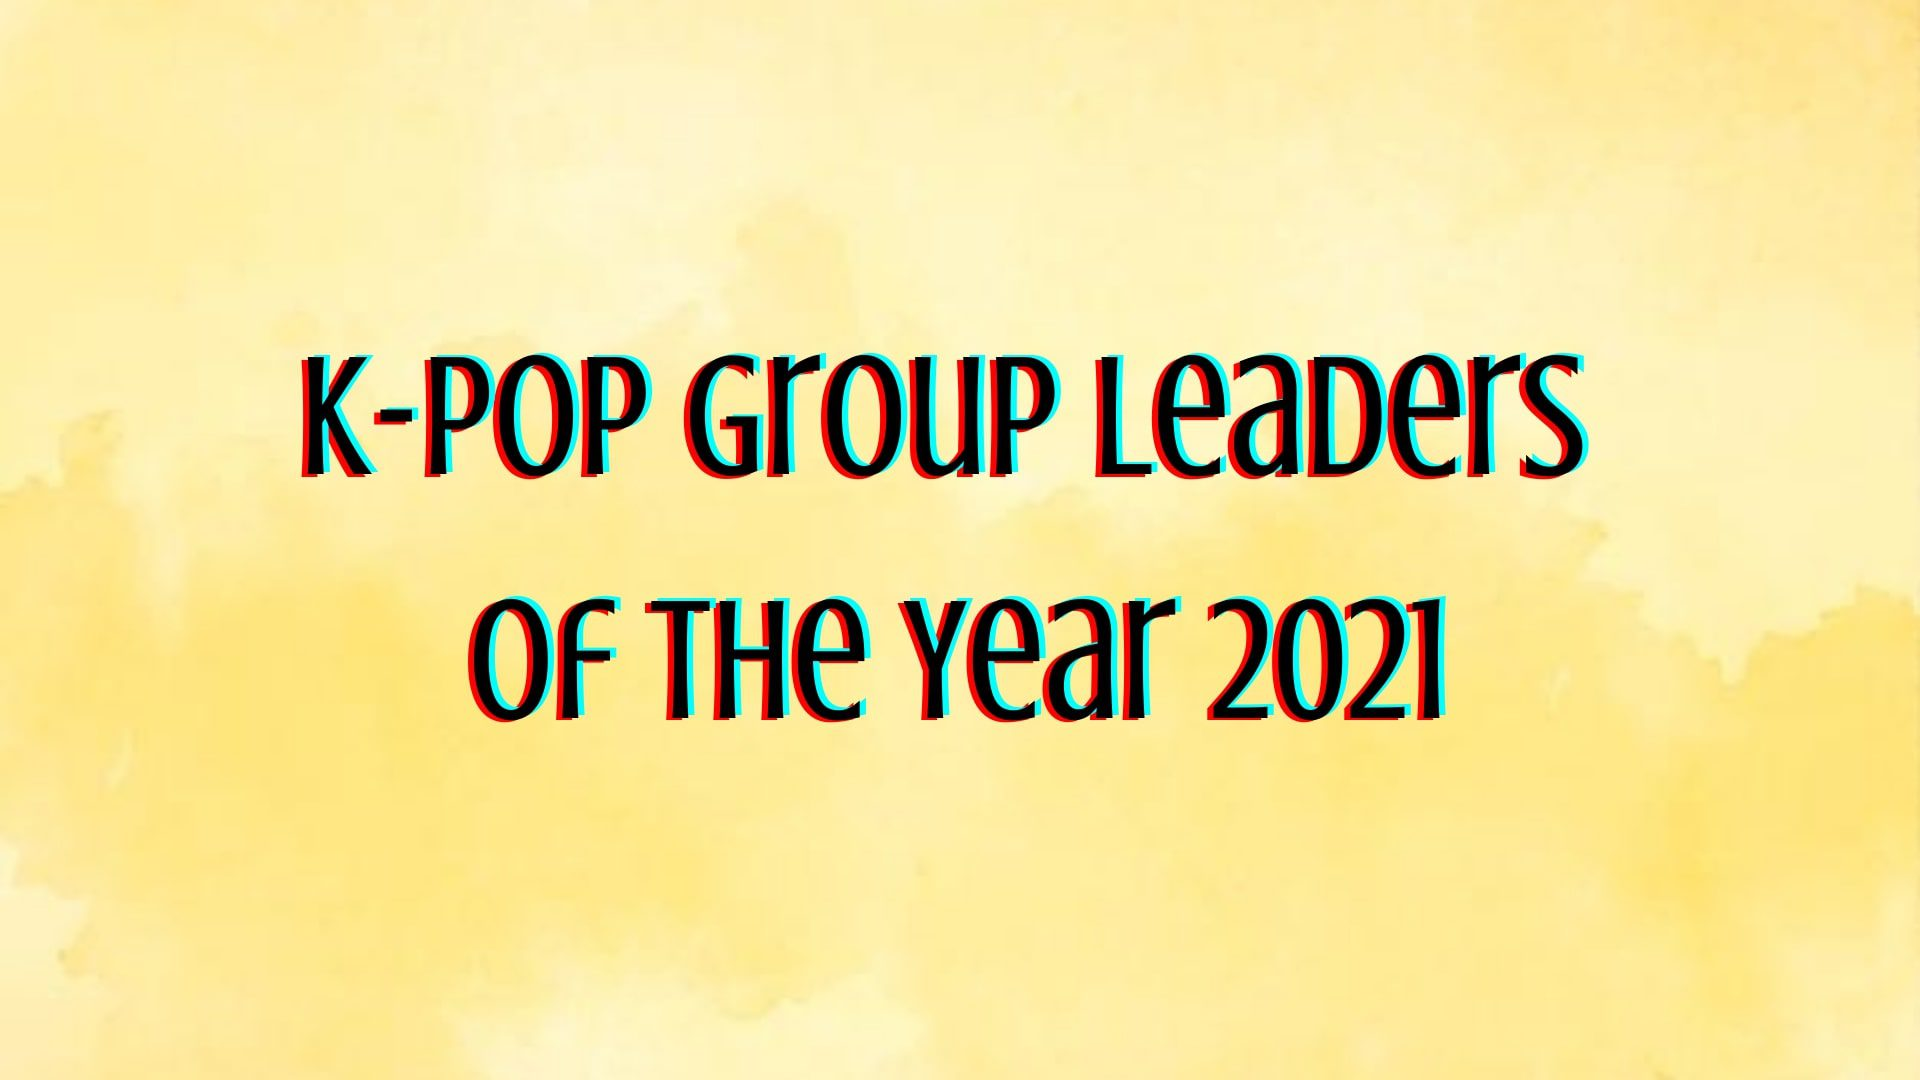 K-Pop Group Leaders Of The Year 2021